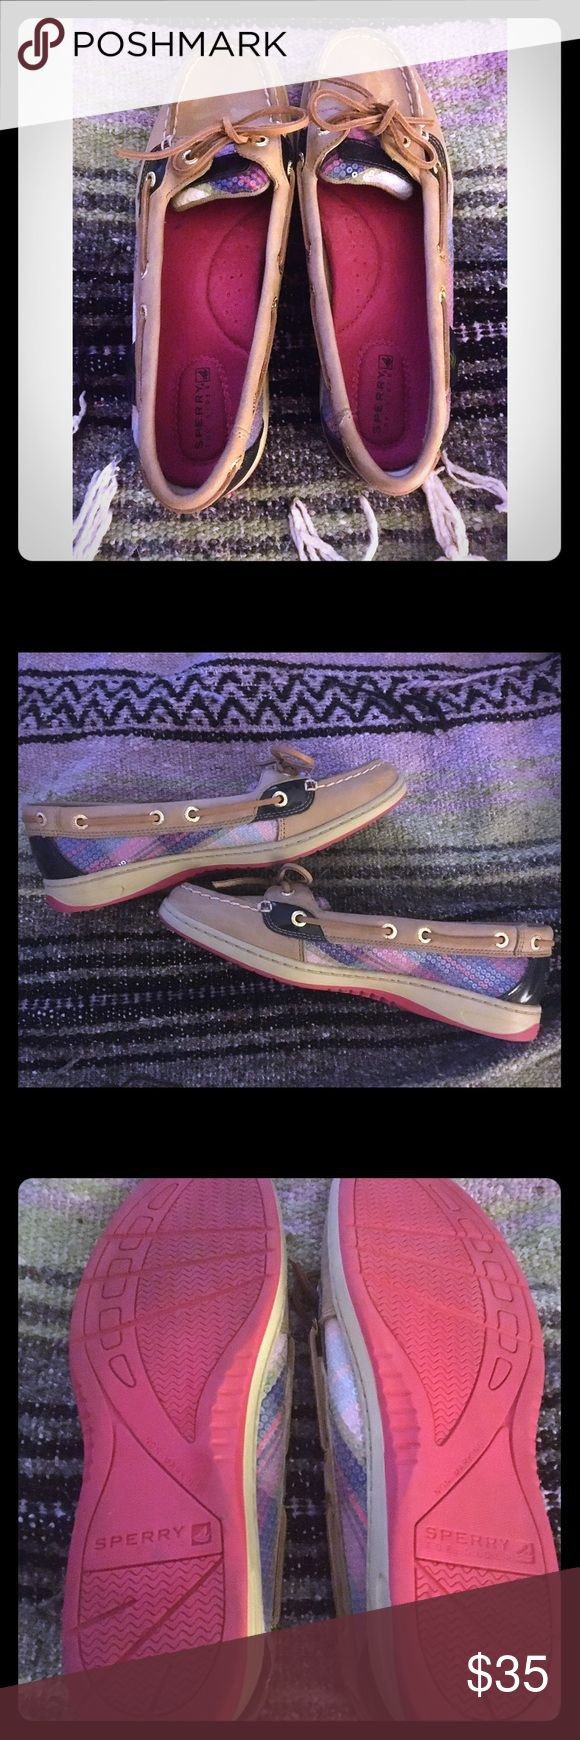 Sperry Top-Siders Women's Angelfish Plaid with Sequins Size  8M gently used, very clean and in great shape-only worn a handful of times. Smoke free environment and please feel free to ask me any questions. Sperry Top-Sider Shoes Flats & Loafers